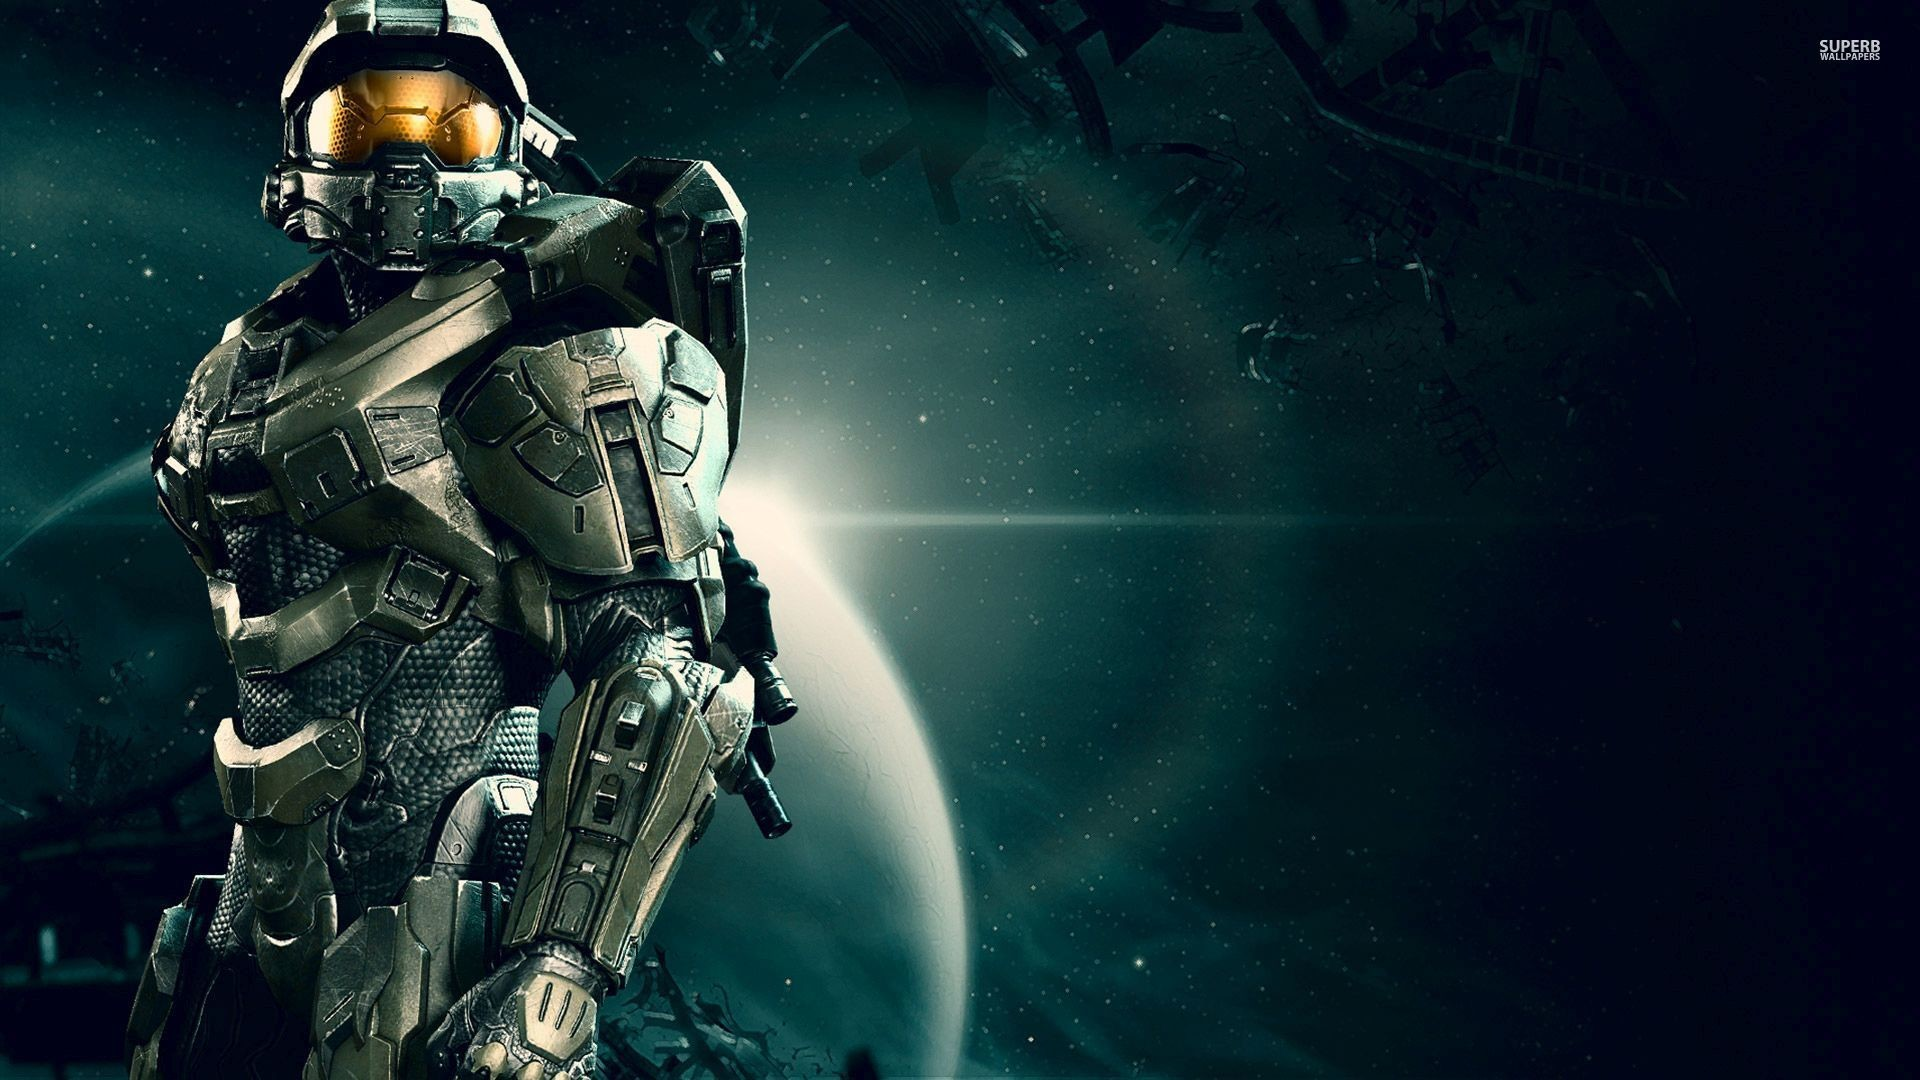 … Halo: The Master Chief Collection Wallpaper 1920×1080 Great Master  Chief Images Wallpaper Free